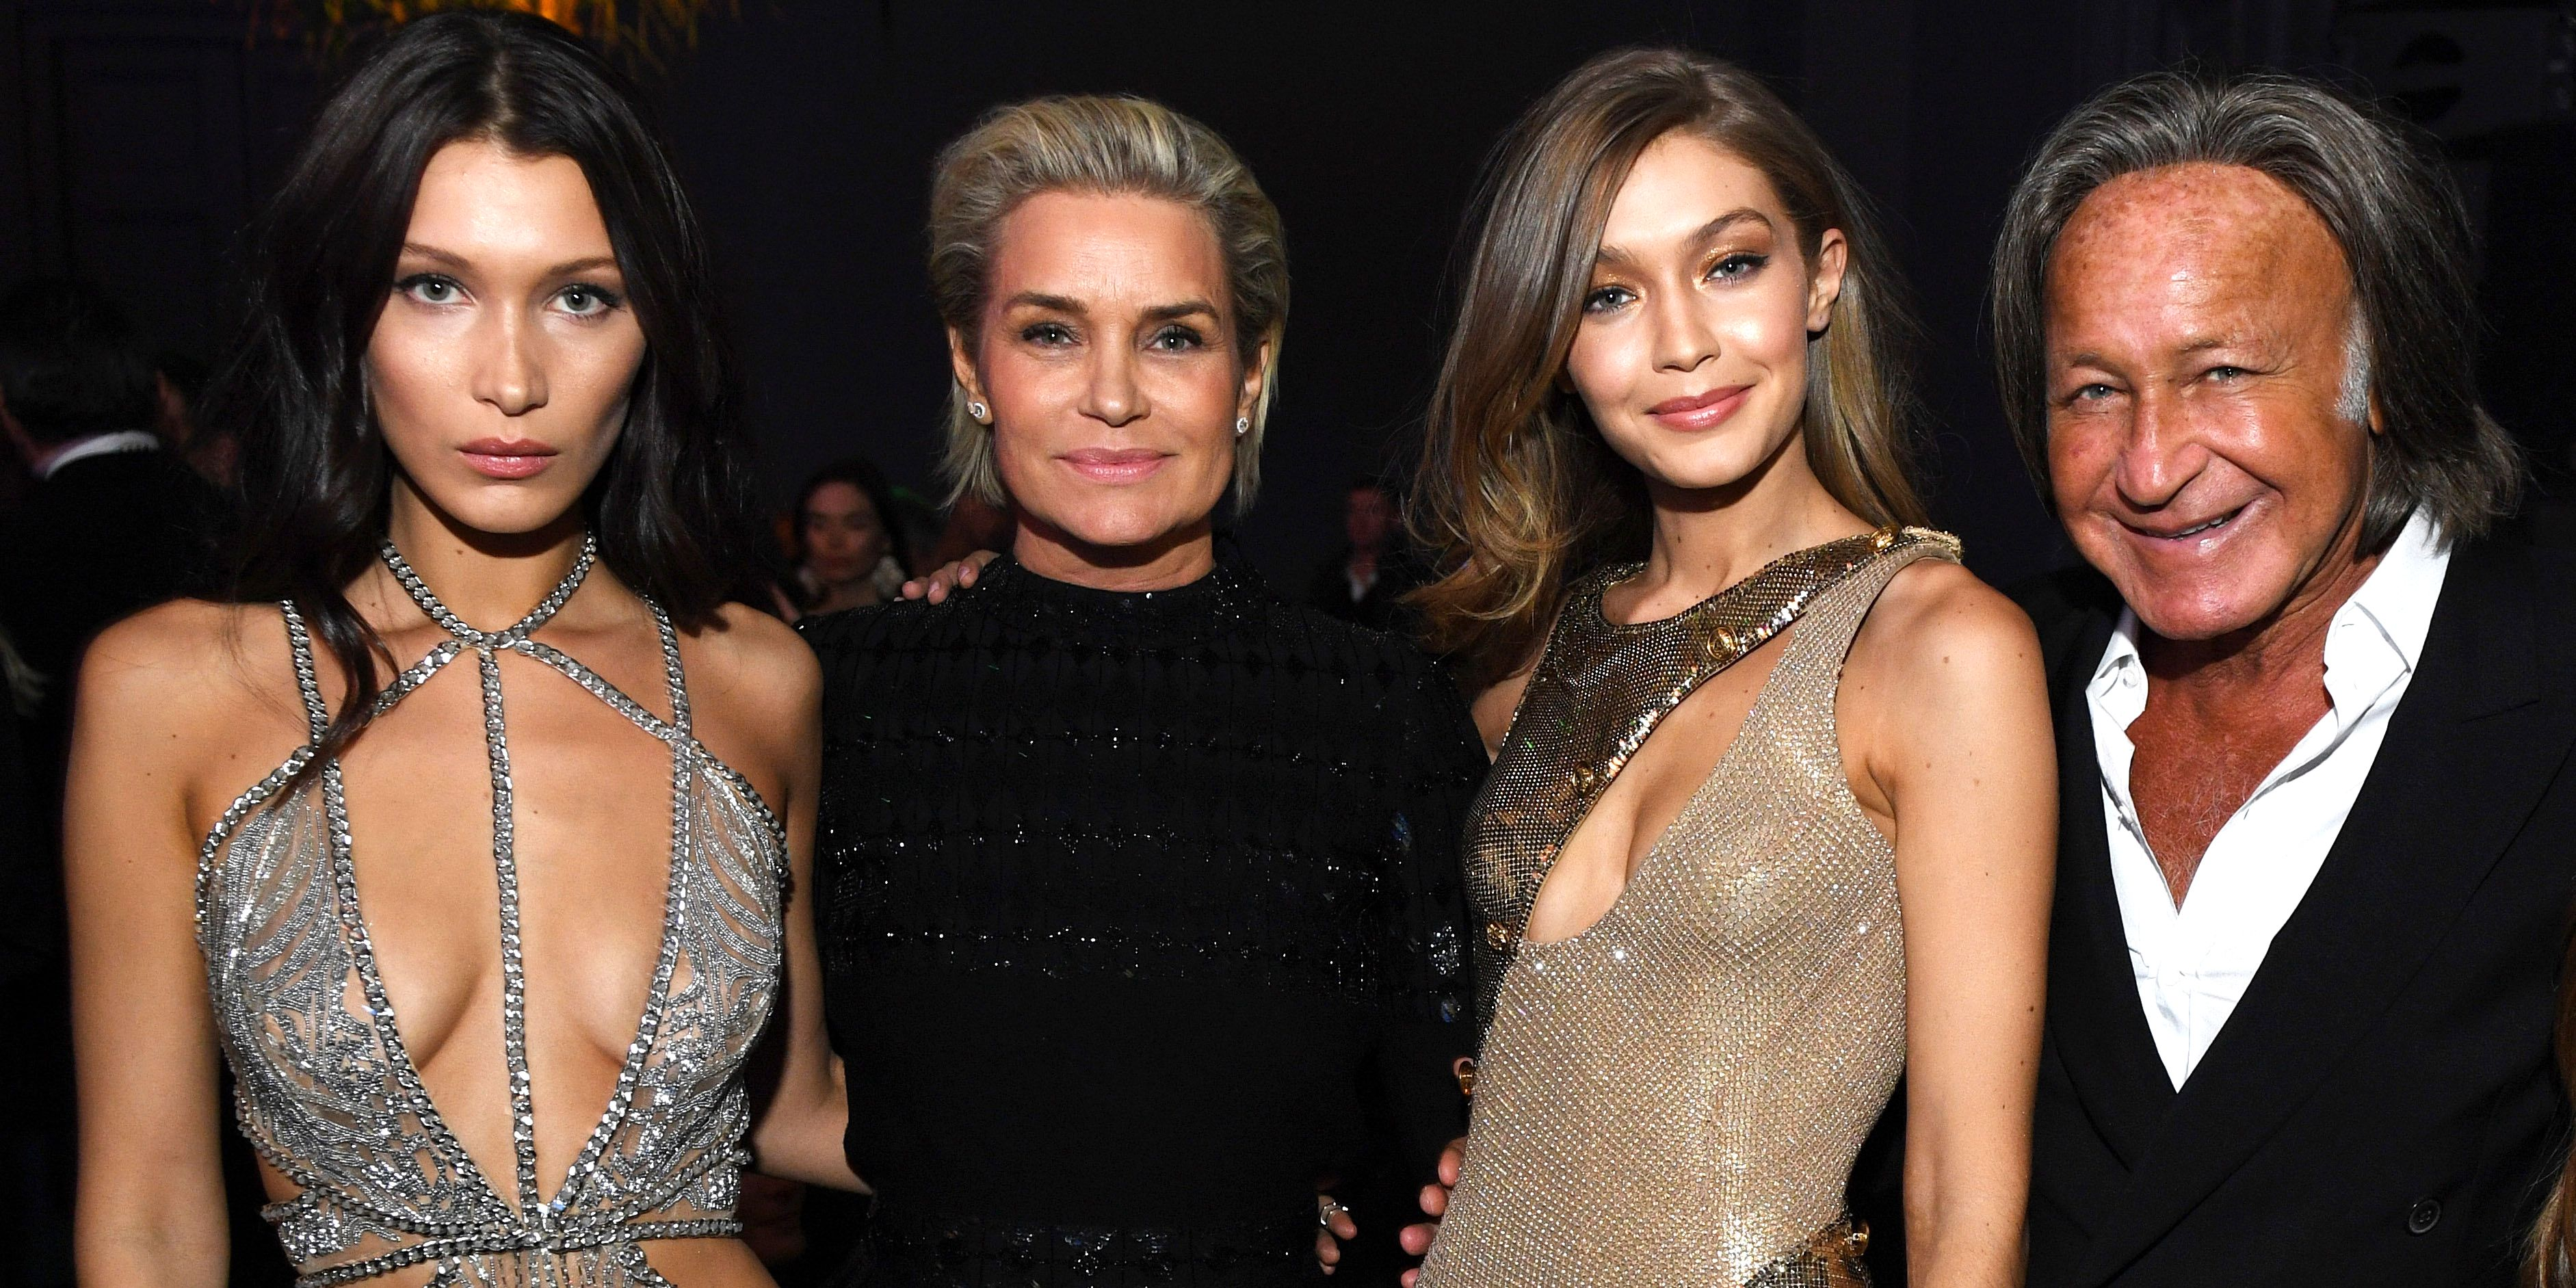 Bella Hadid Parties Up a Storm with Gigi Hadid to Celebrate Her 21st Birthday